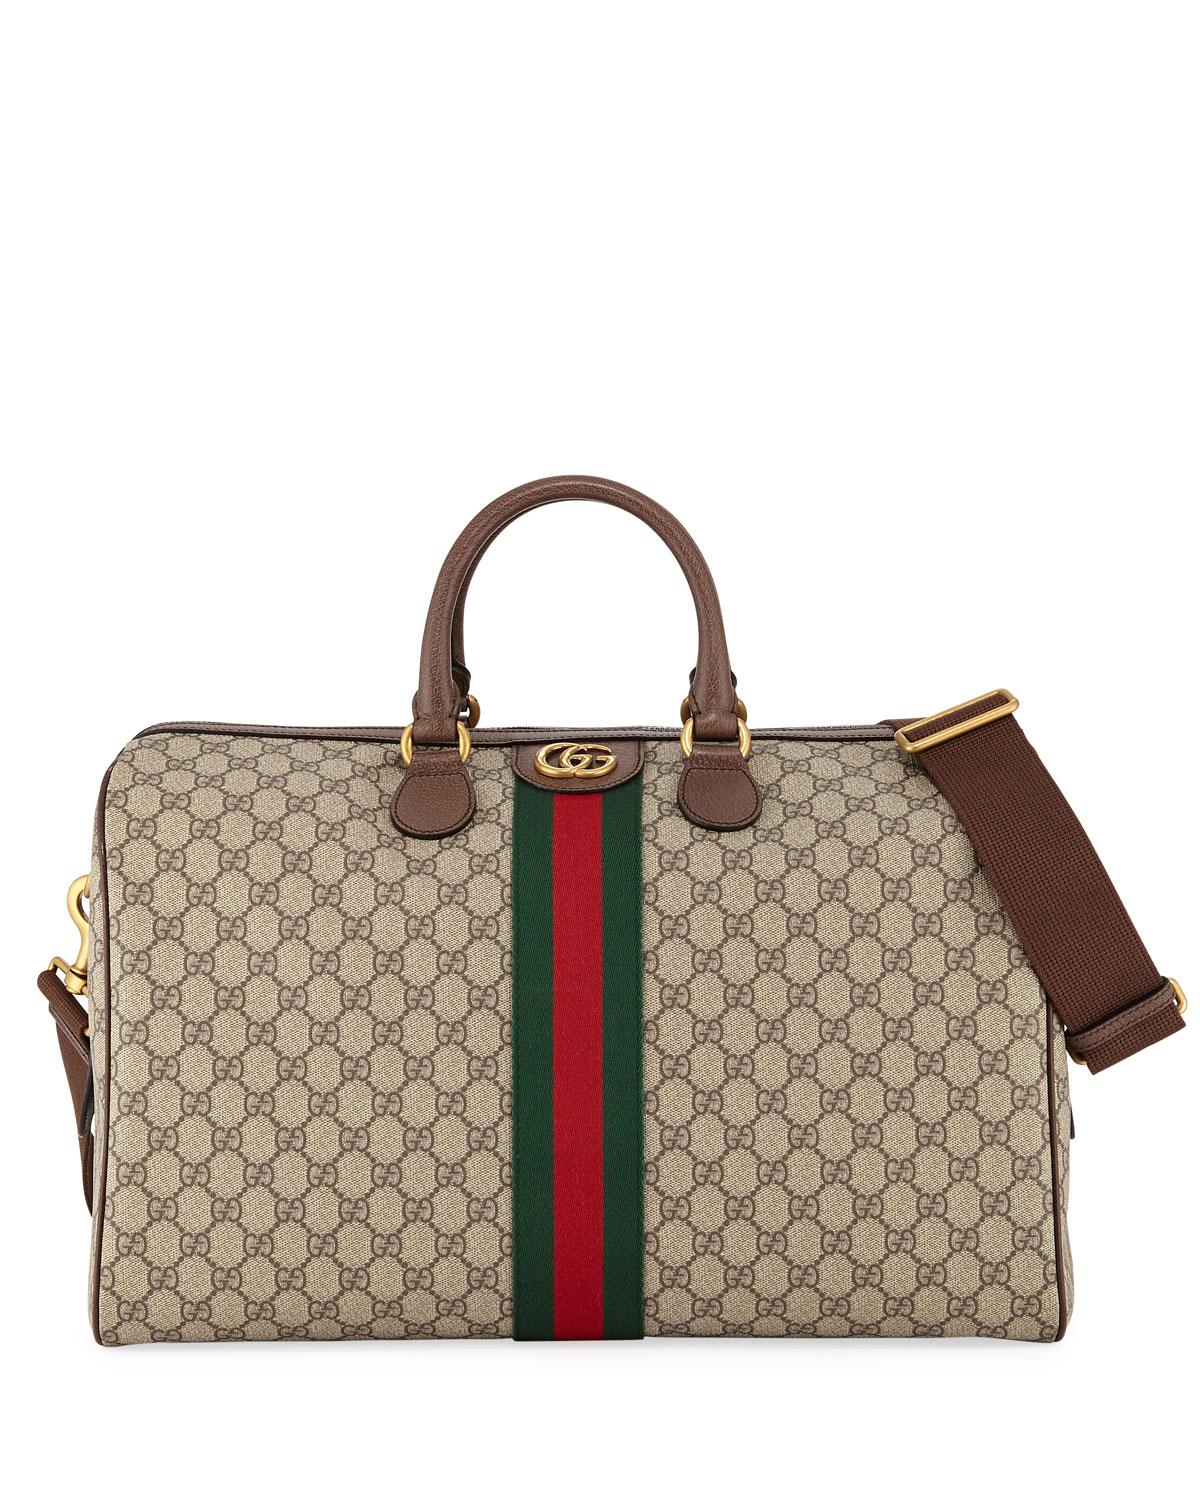 67fdb3a62f96 Lyst - Gucci Men s Soft GG Supreme Carry-on Duffel Bag in Natural ...